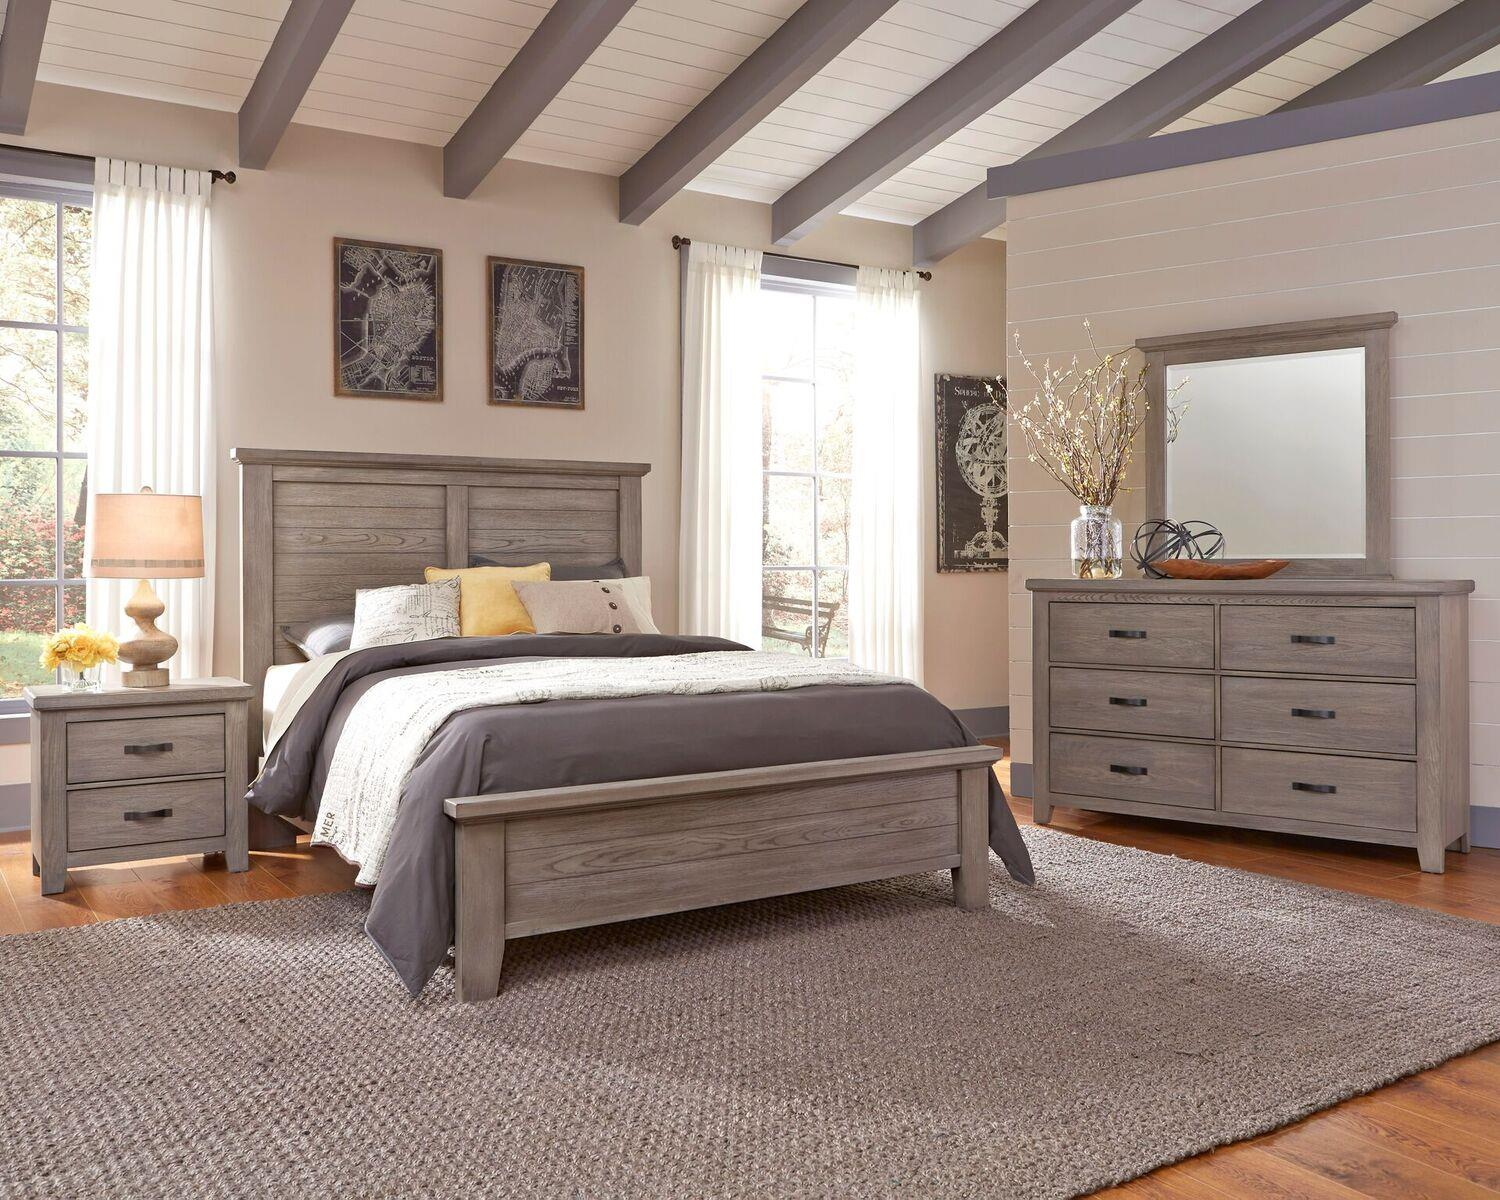 Vaughan Bassett Cassell Park King Bedroom Group - Item Number: 516 K Bedroom Group 1